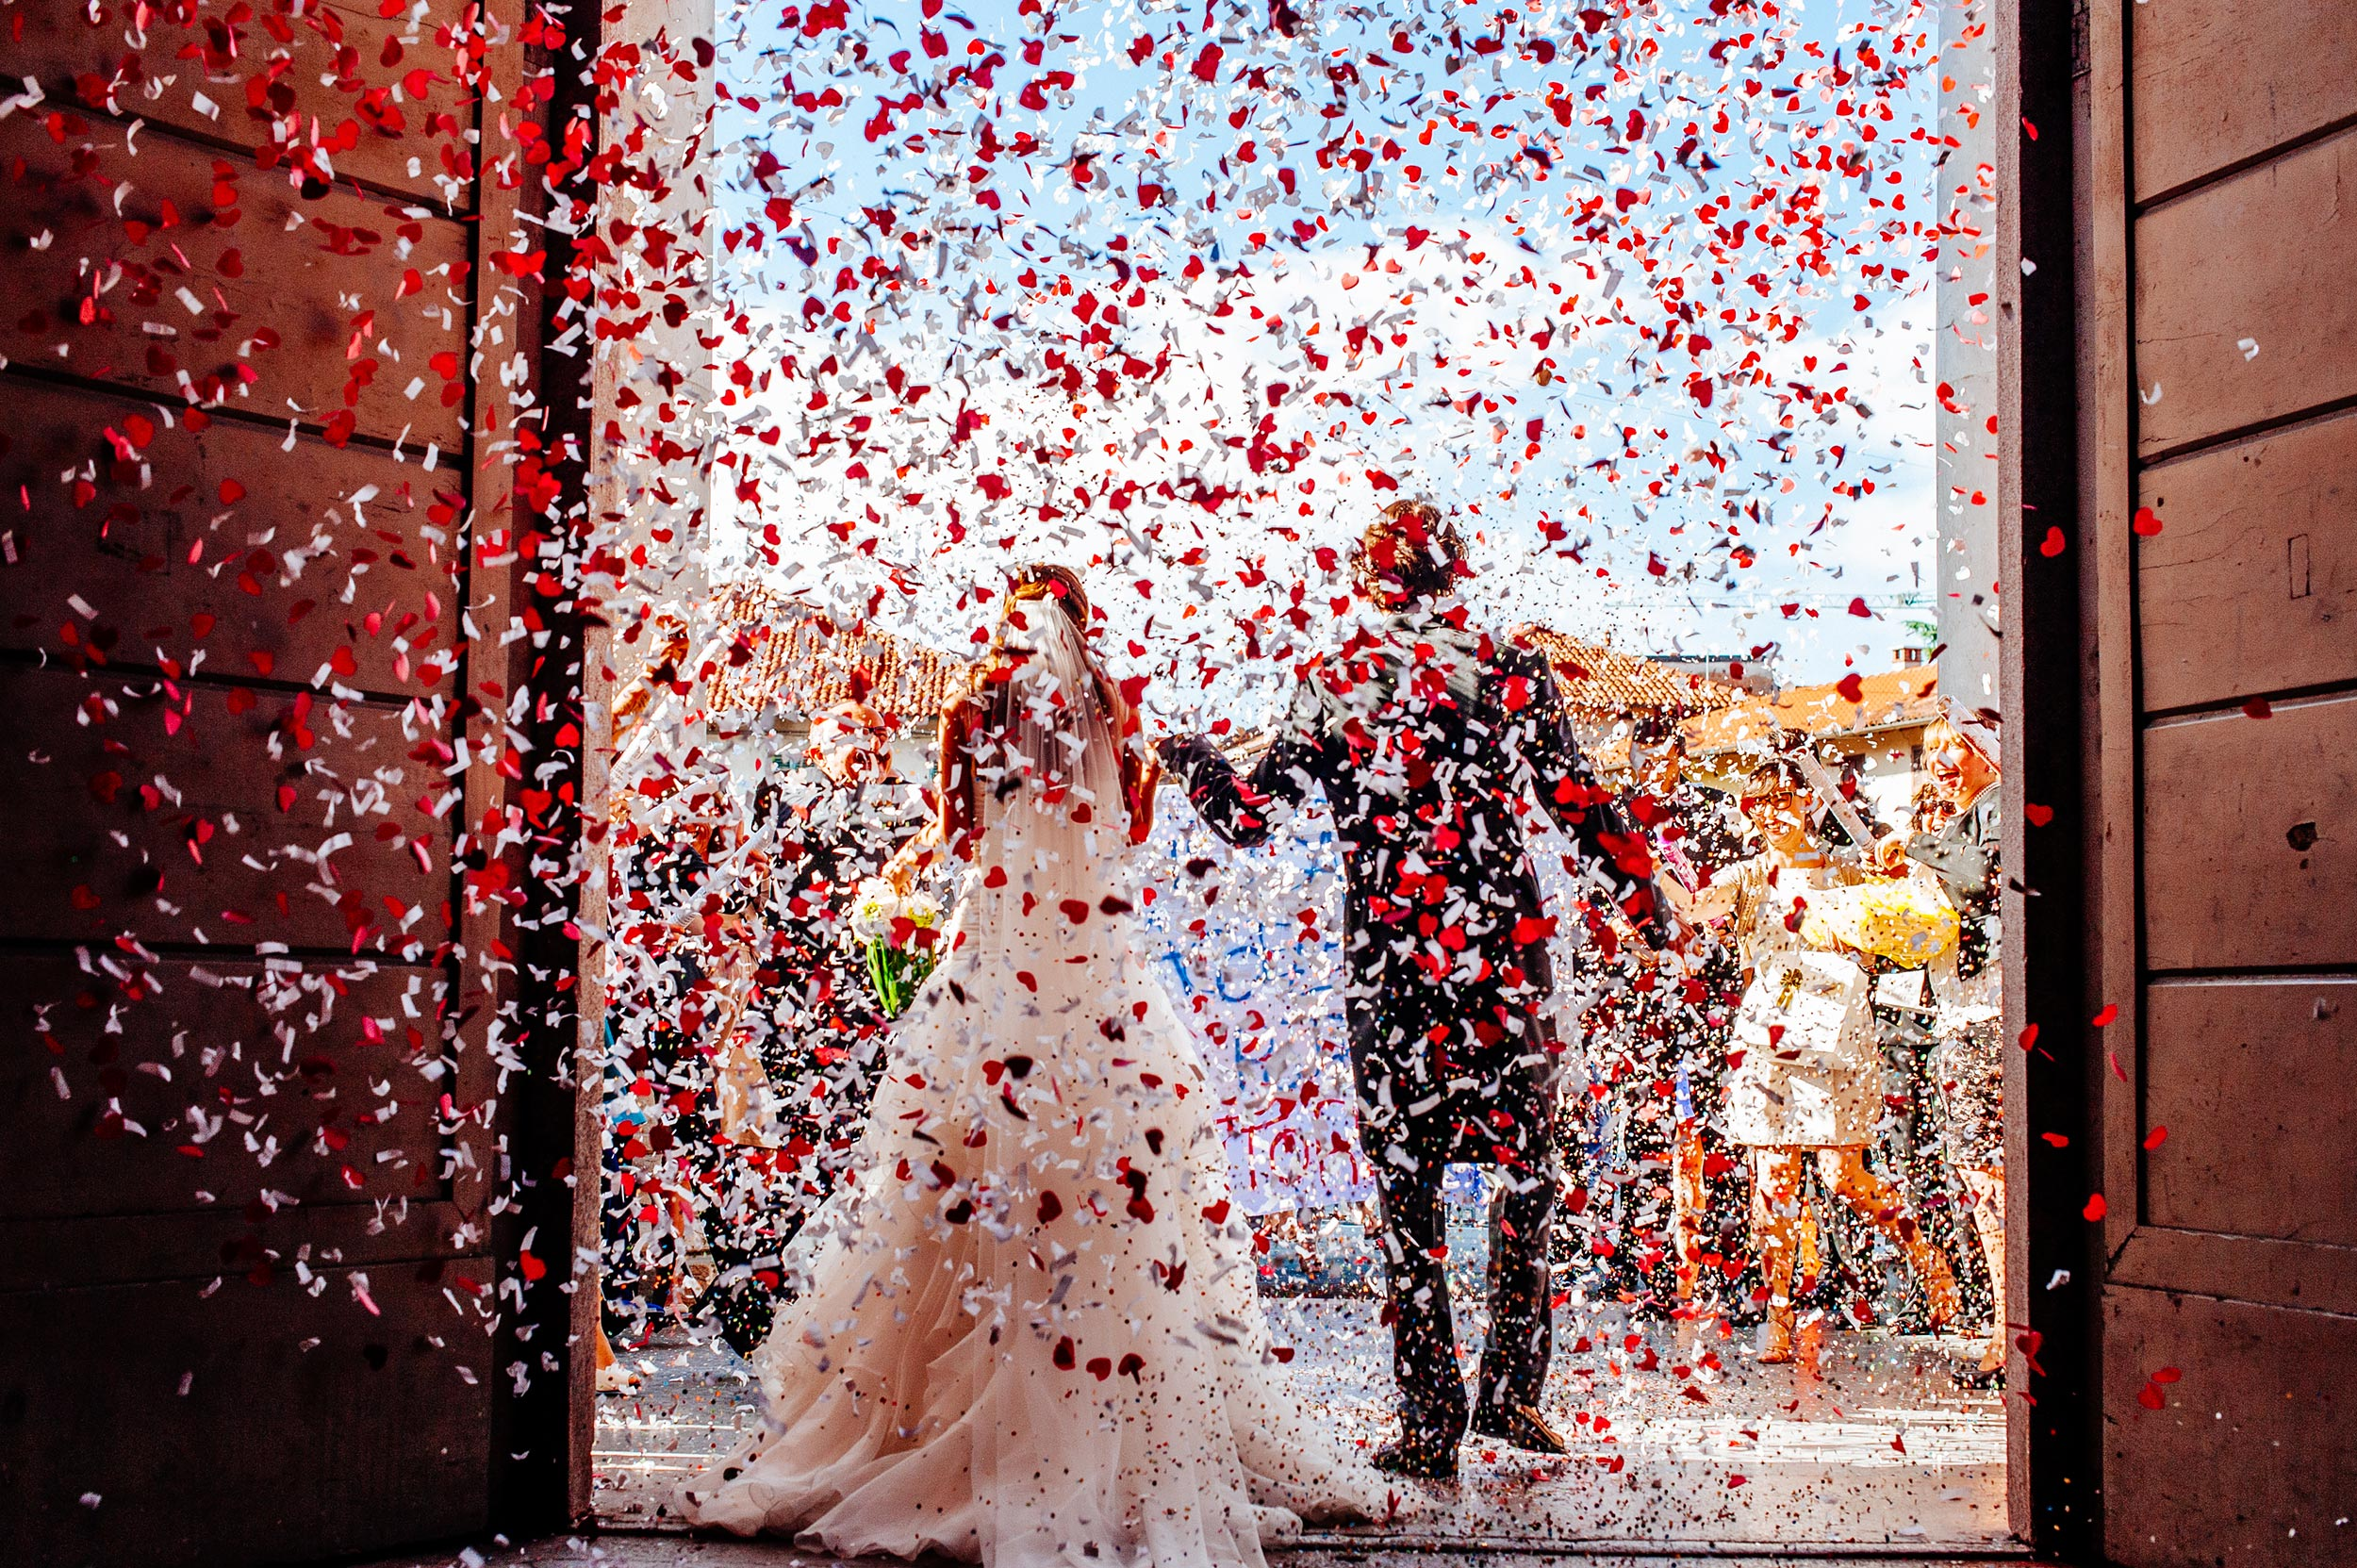 confetti-cannons-red-hearts-wedding-italy-church-exit.jpg